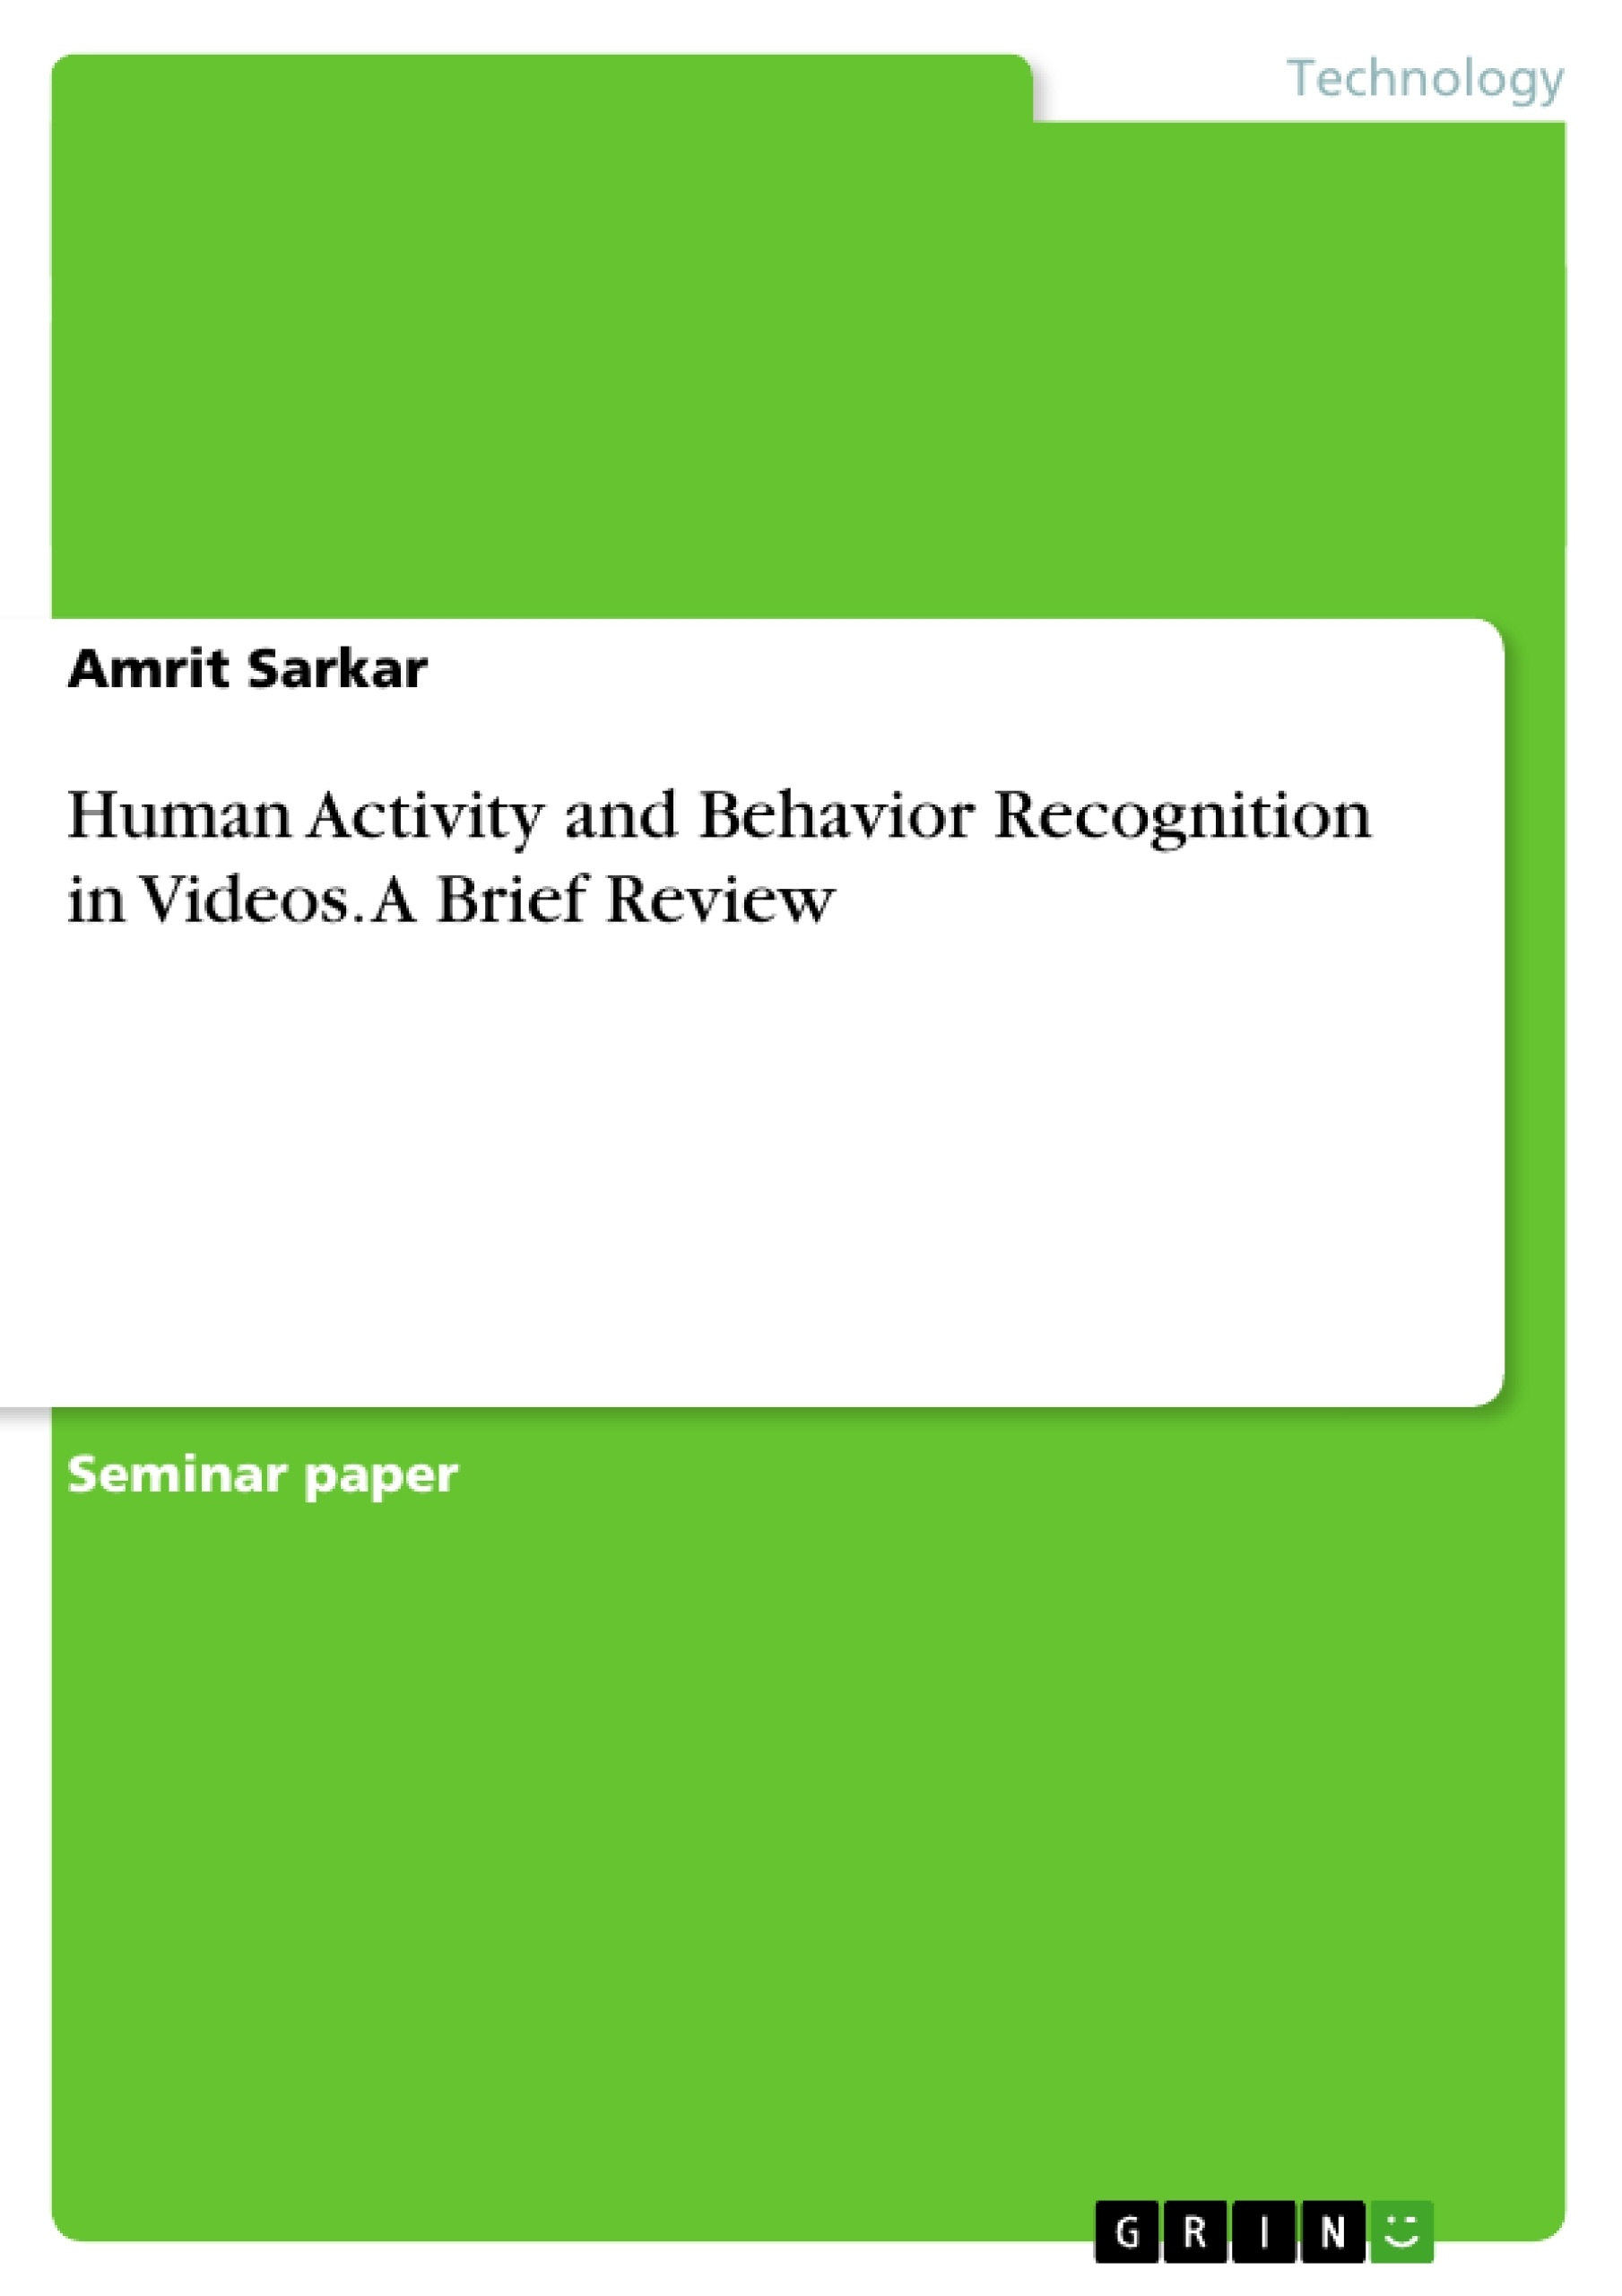 Title: Human Activity and Behavior Recognition in Videos. A Brief Review